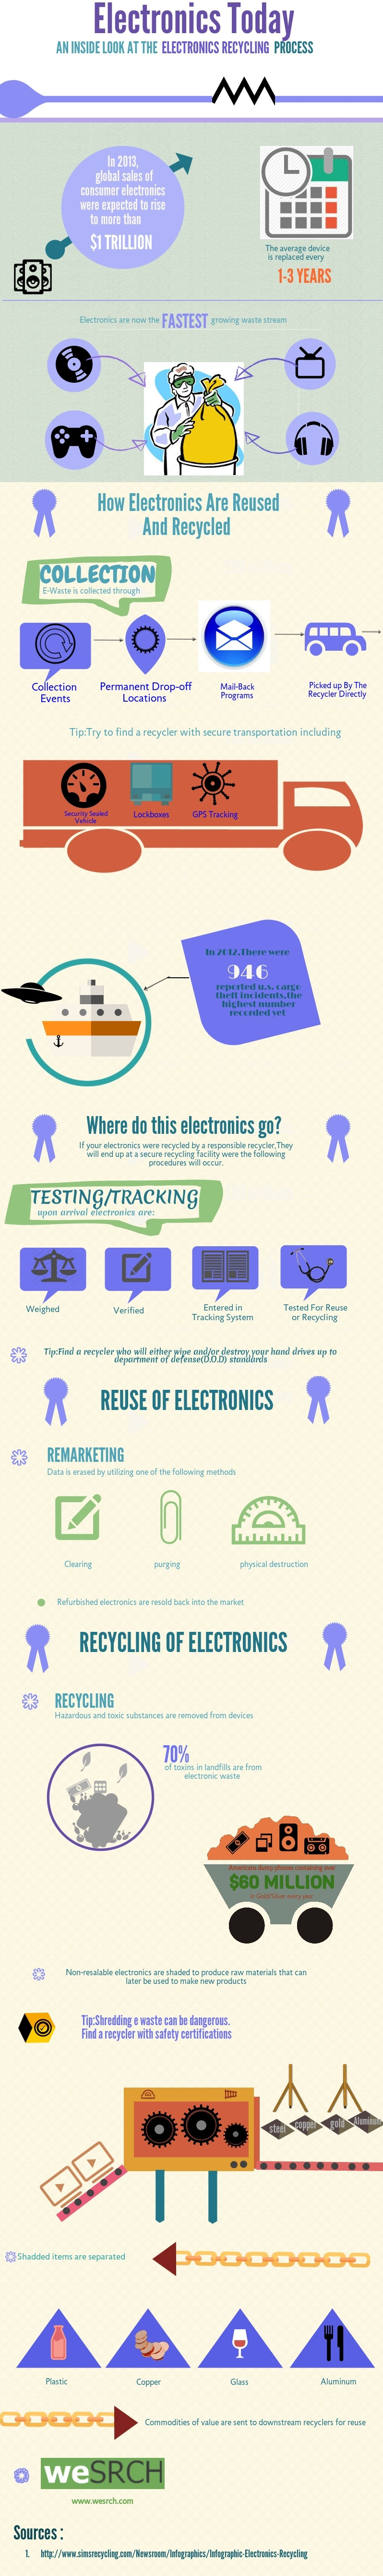 Recycling Of Electronics